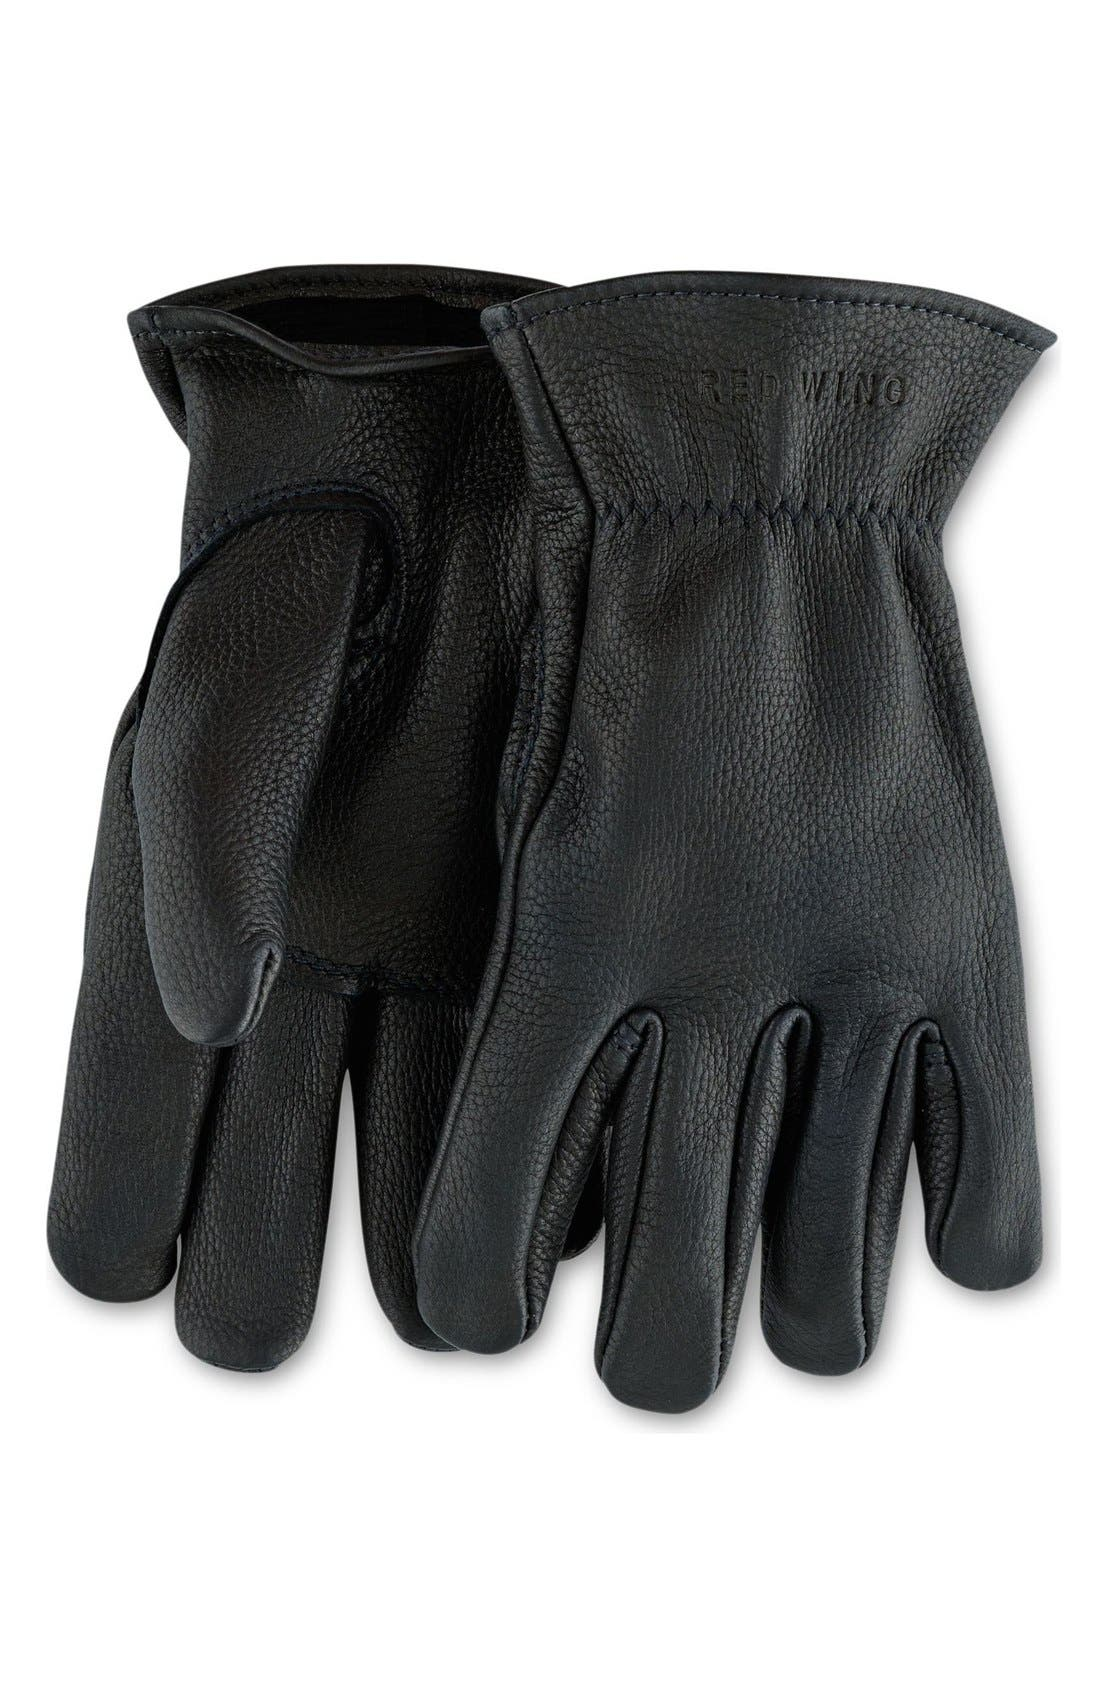 RED WING Buckskin Leather Gloves, Main, color, 001